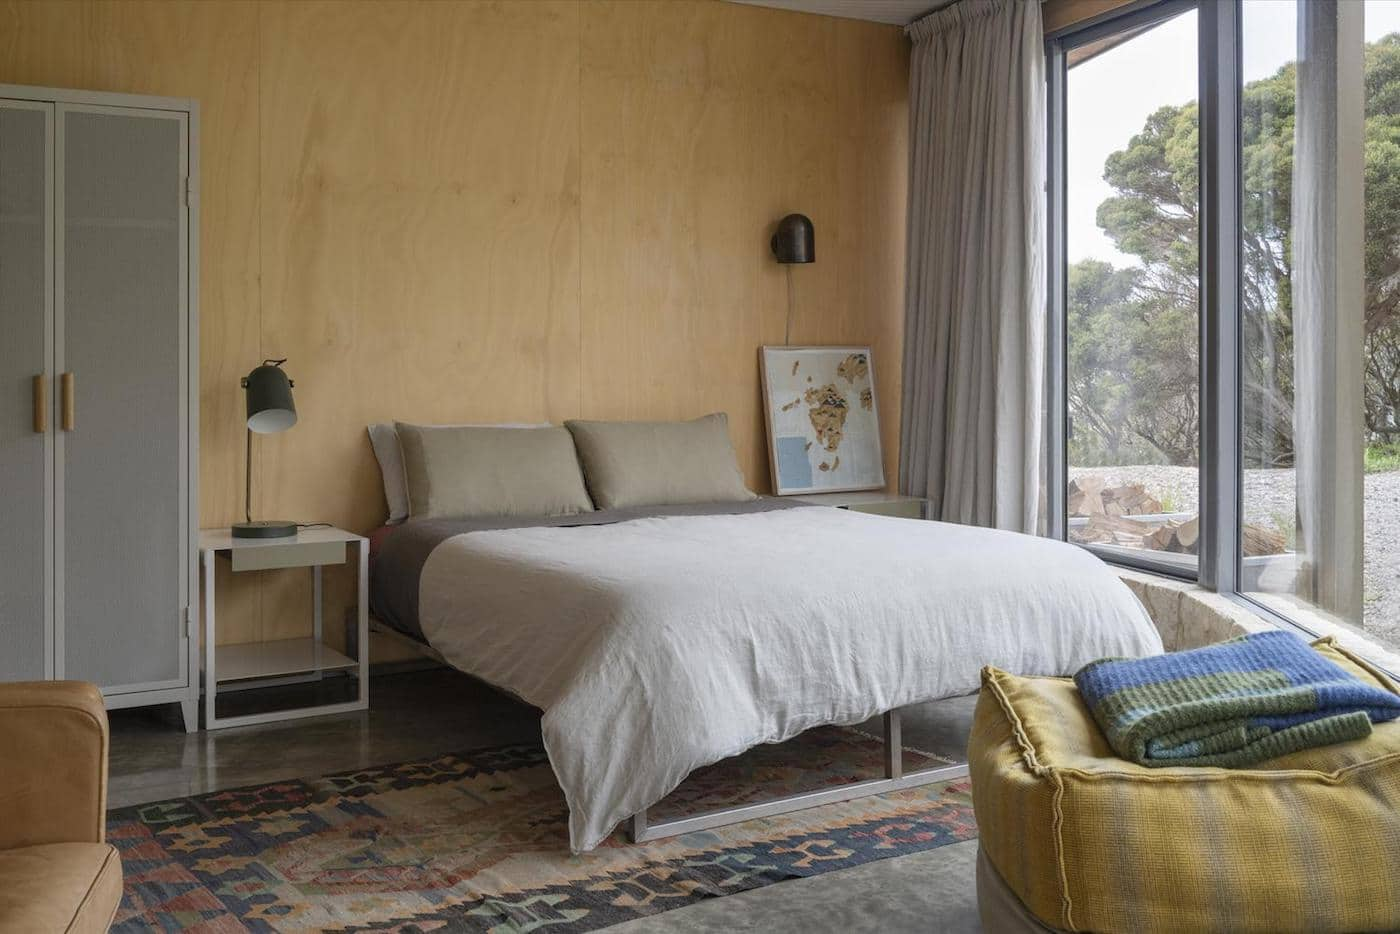 Timber wall and bed with white doona cover